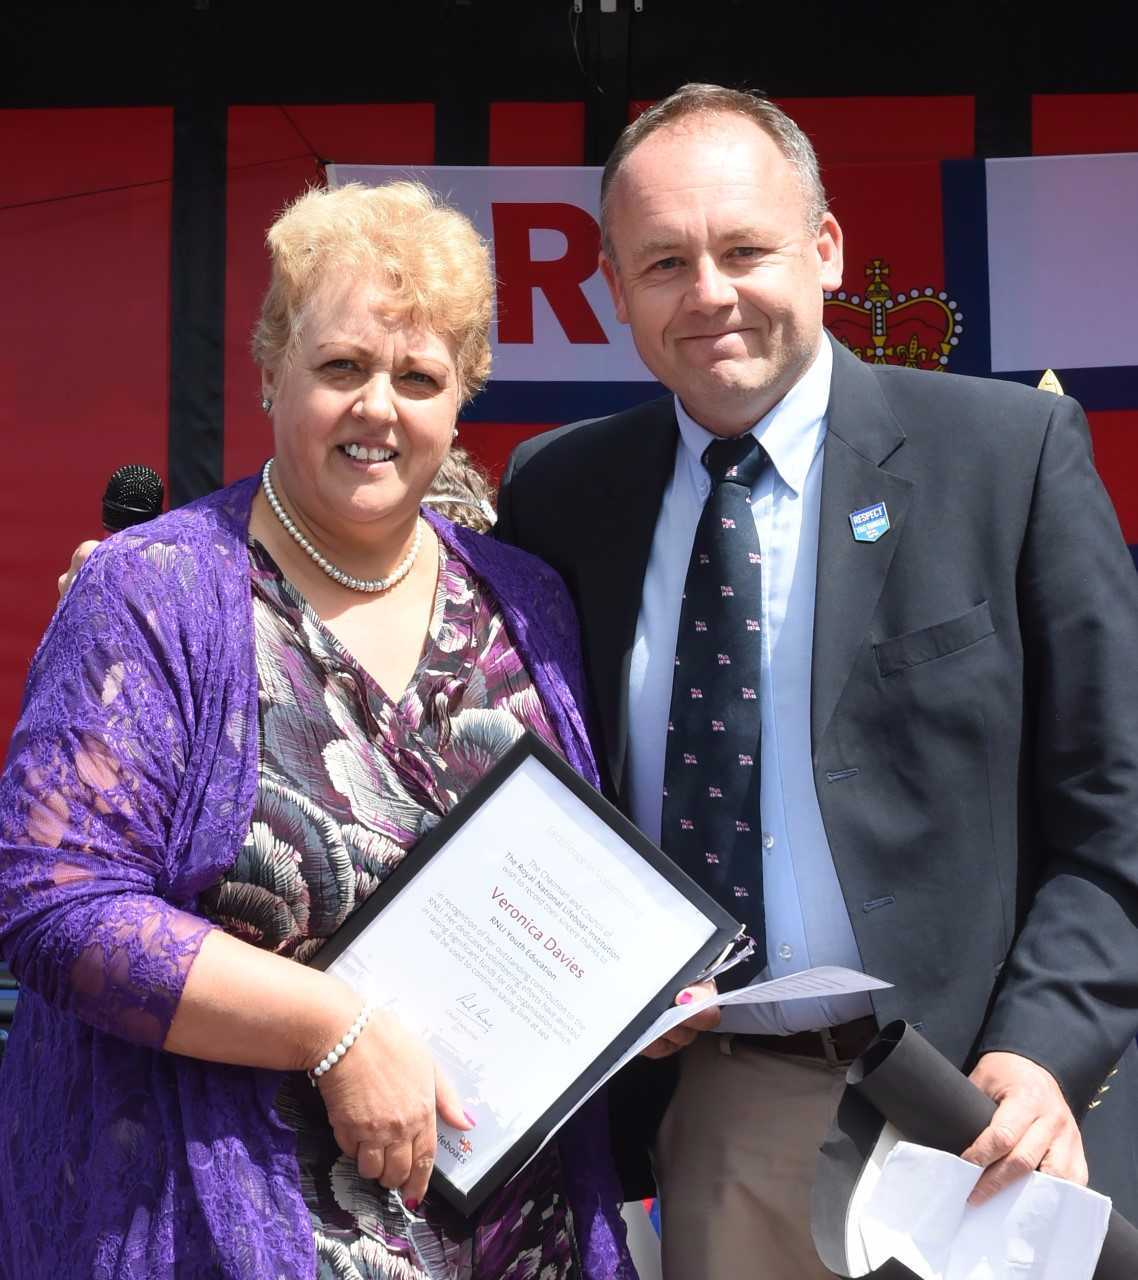 Mark Lees, Dunbar RNLI Station chairman, presents a special certificate to Veronica Davies